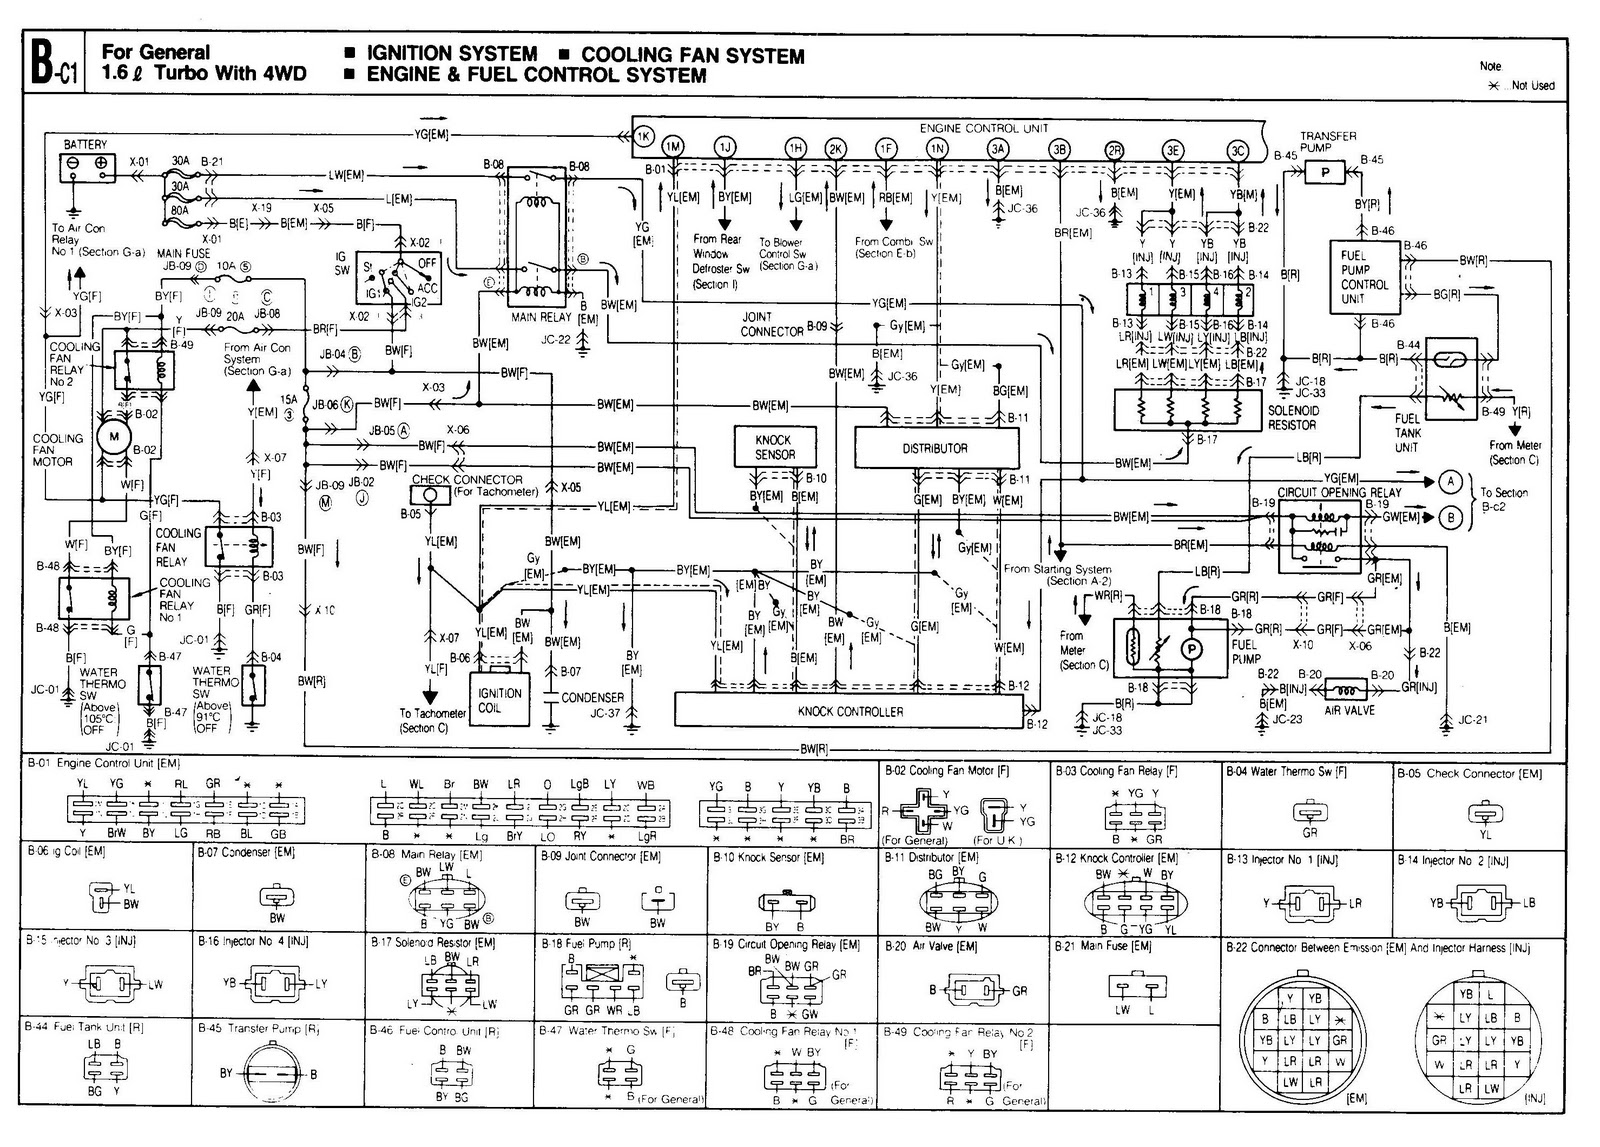 WRG-2199] 2007 Mazda 3 Wiring Diagram Underhood